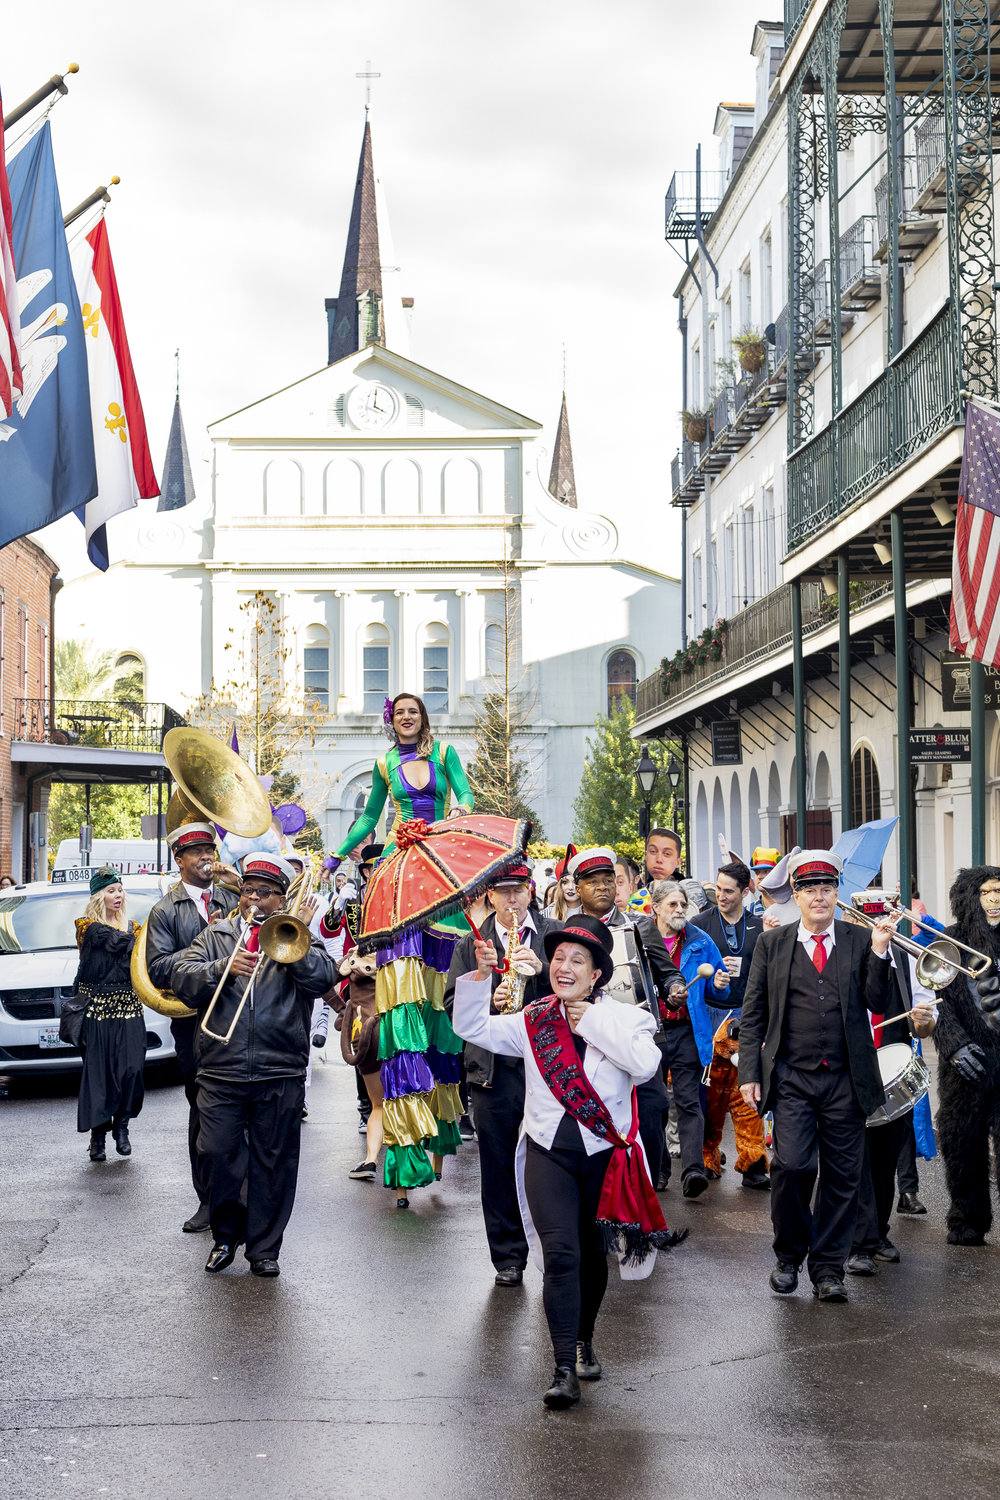 Not Mardi Gras, just your regular ol' Saturday Second Line. Y'know. As you do.